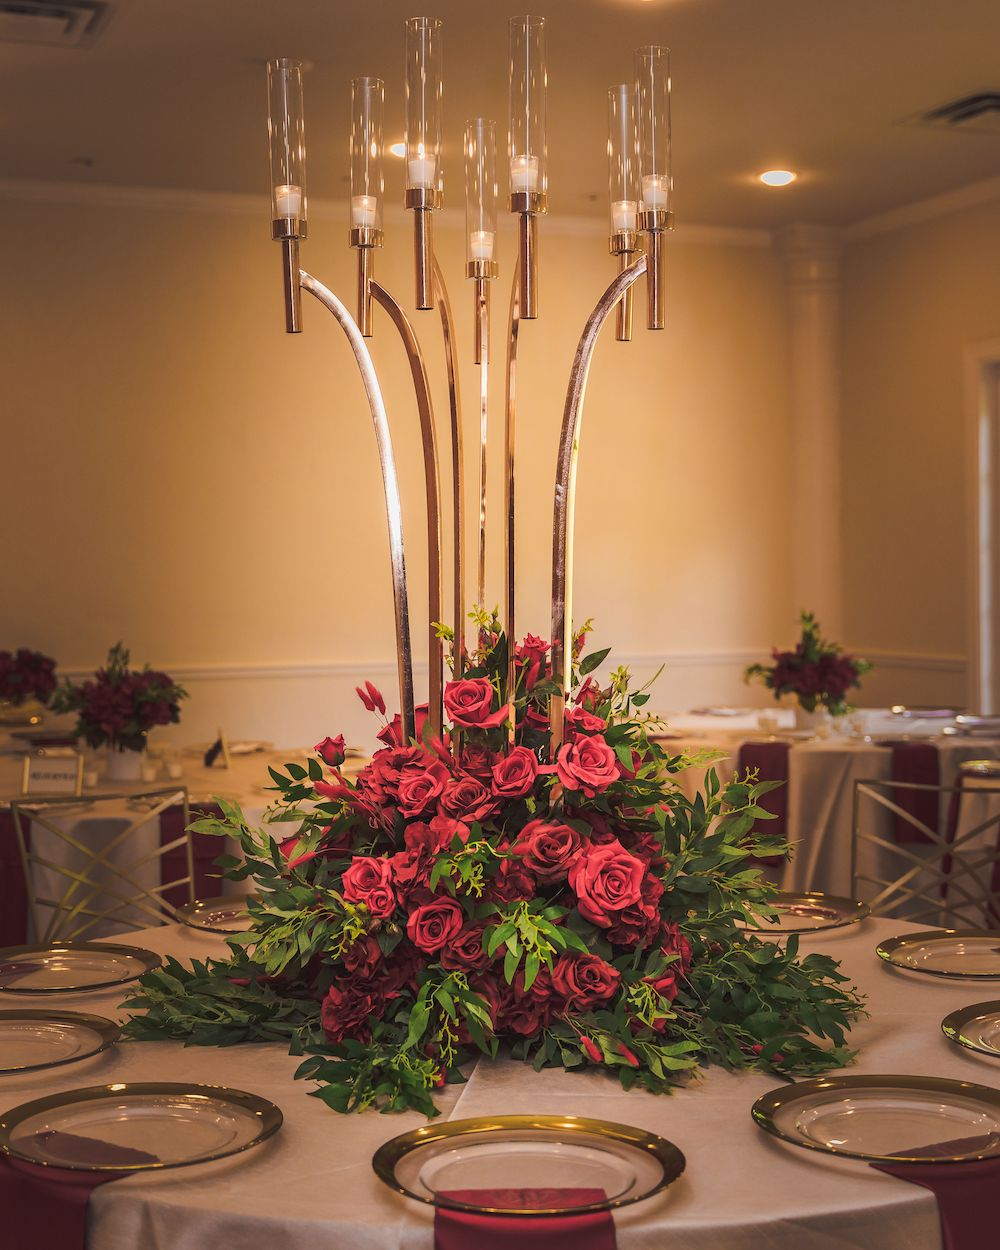 Tall gold and glass candle holders above a centerpiece arrangement of red roses.